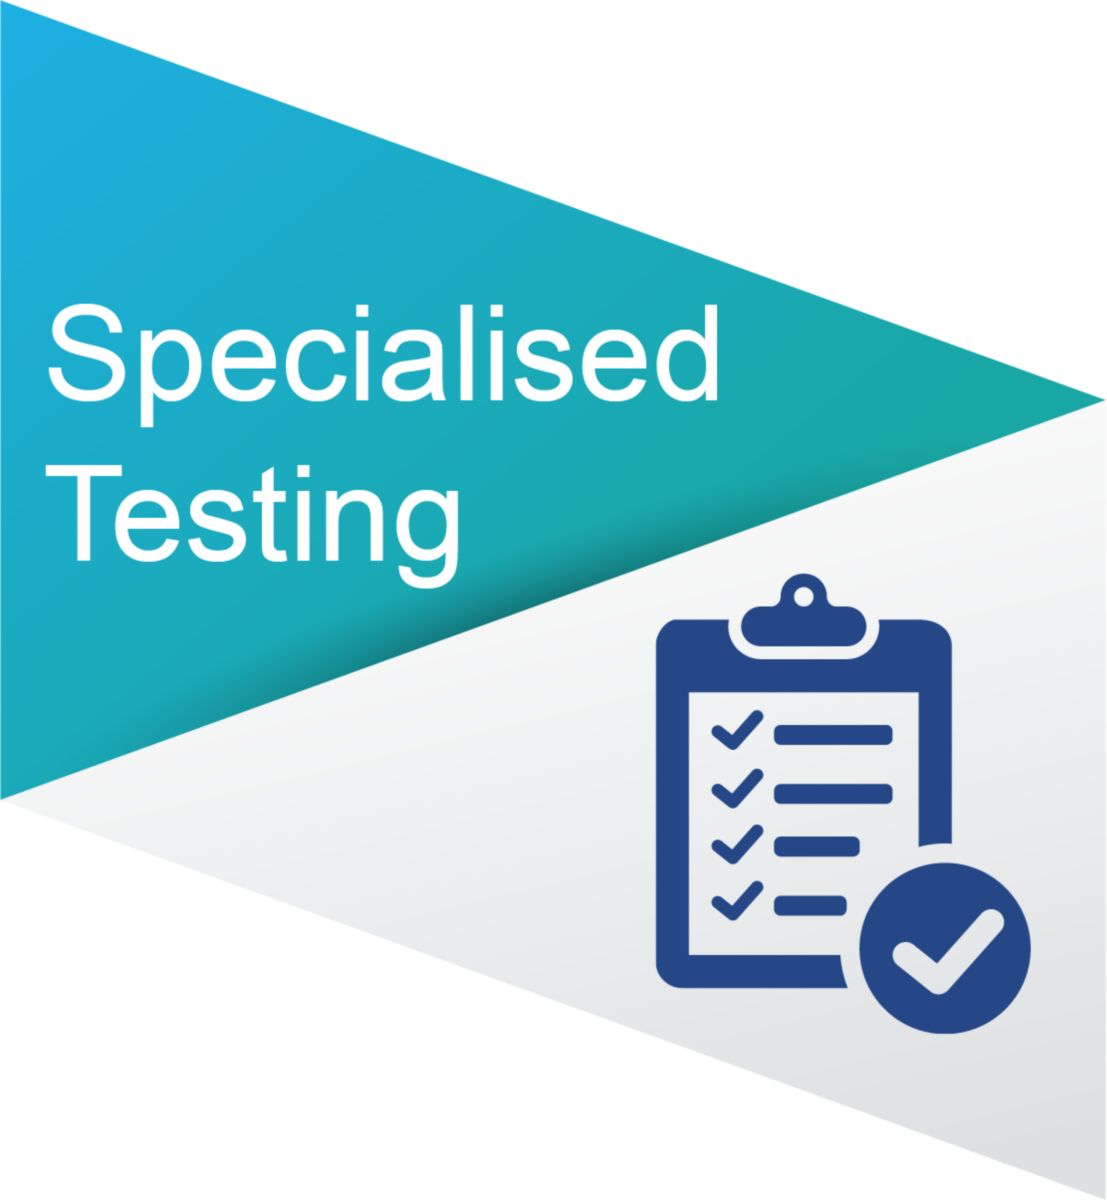 Specialised testing